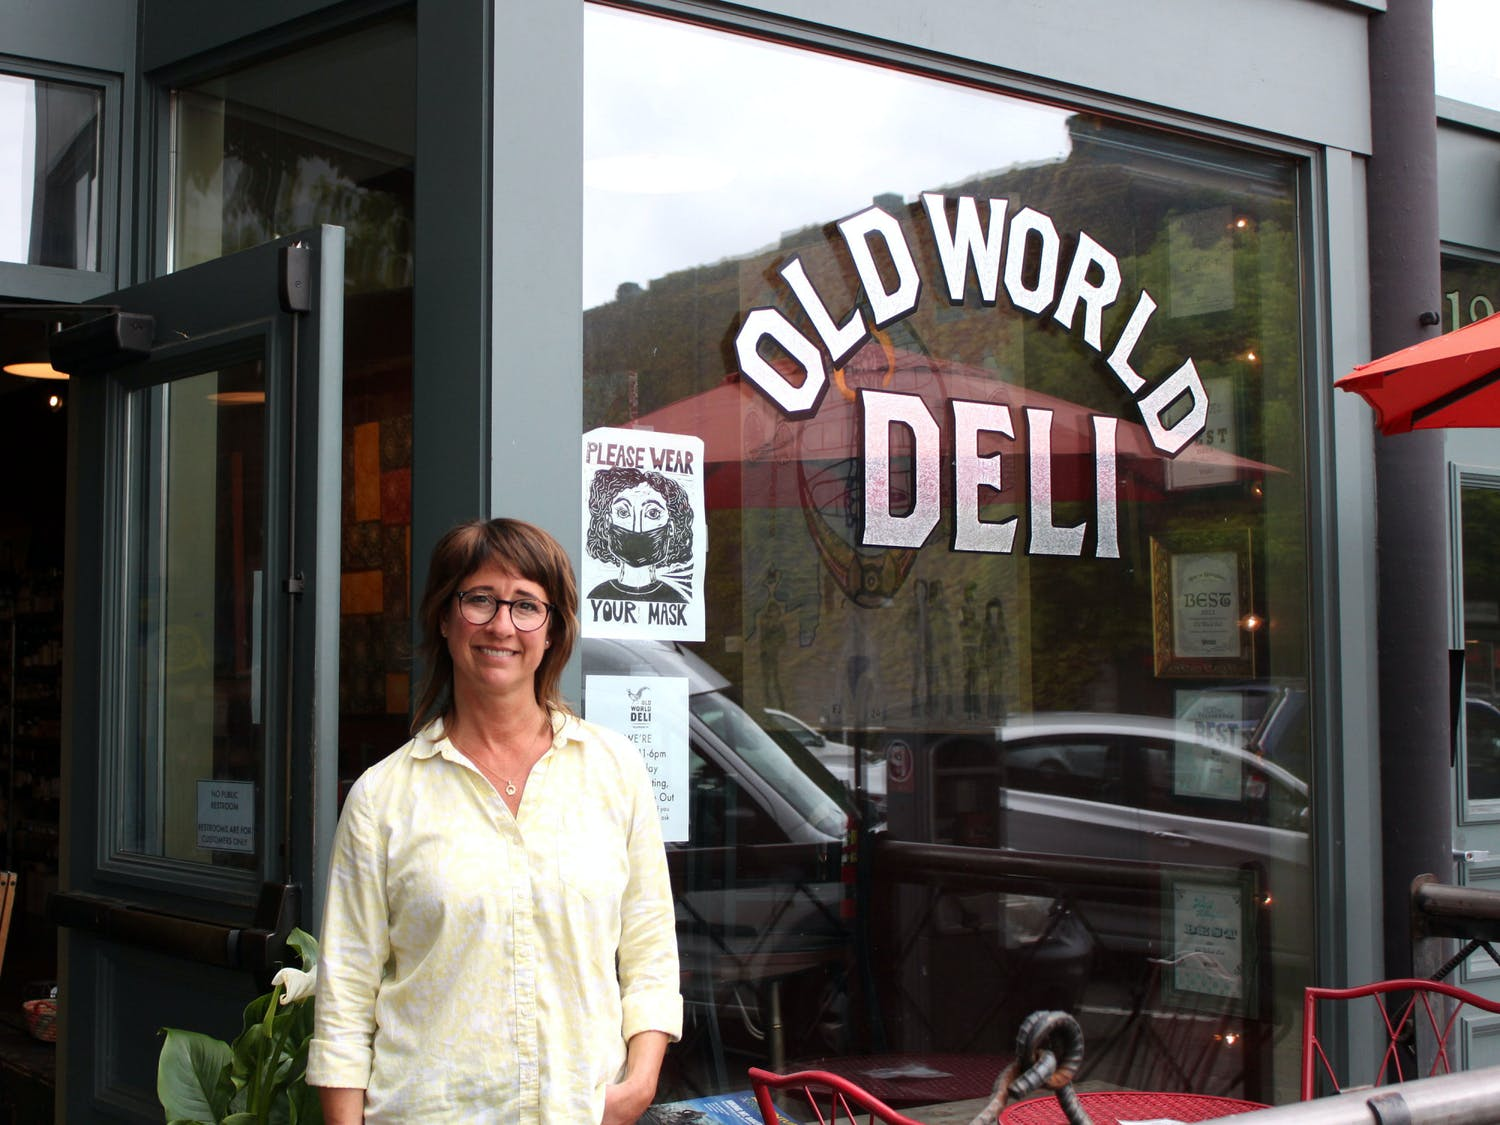 Anna Adams, owner of Old World Deli in Bellingham, Wash., stands outside the store's front window on Wednesday, May 26. If your business is going to survive, Adams said you have to be flexible and react to the changes and figure out creative solutions. // Photo by Cameron Baird